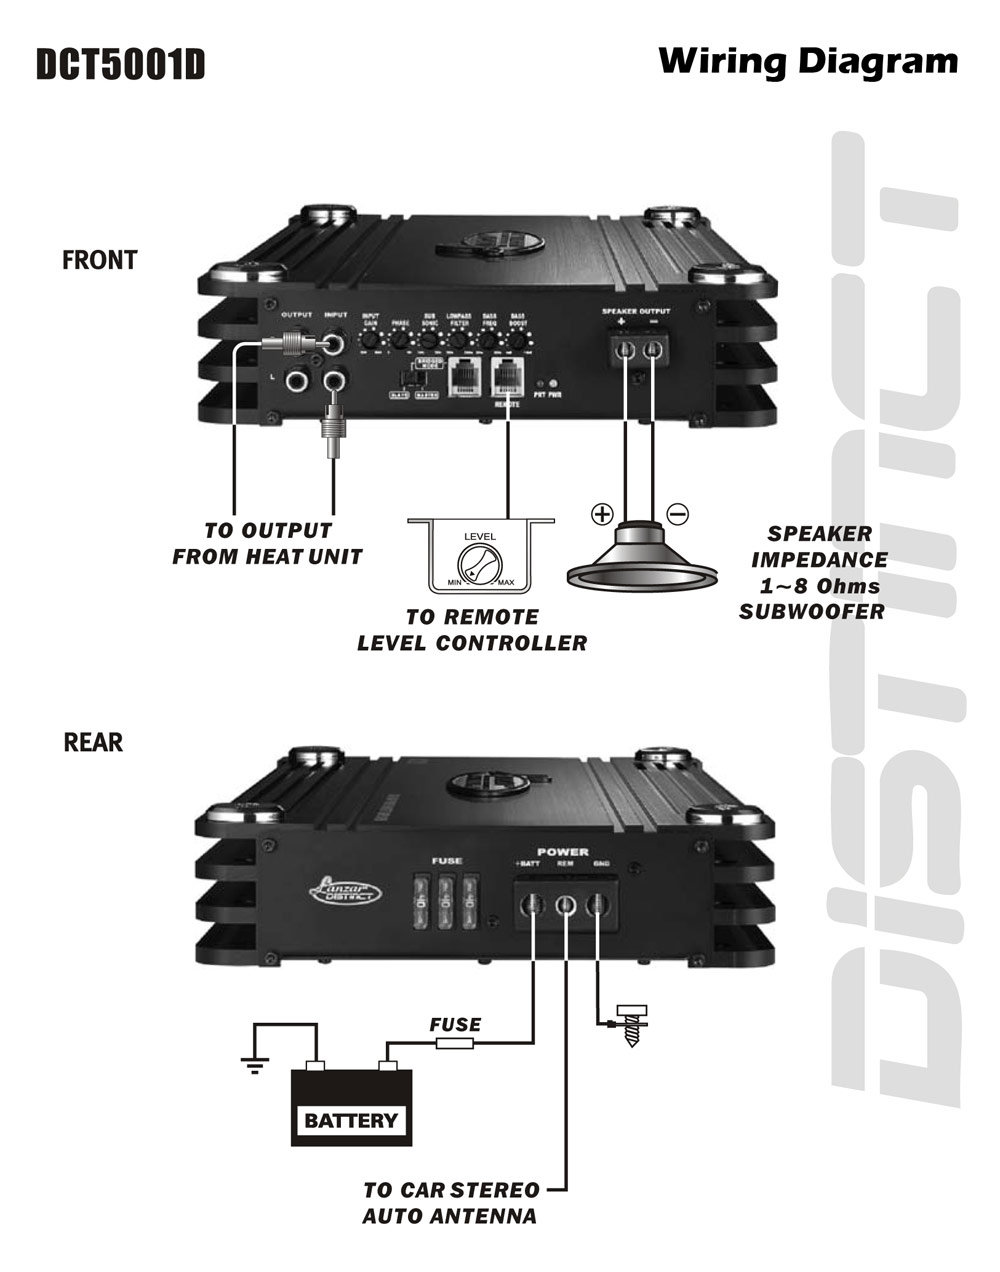 DCT5001D_diagram lanzar wiring diagram lanzar maxp154d wiring diagram \u2022 wiring Car Stereo Fuse at mifinder.co